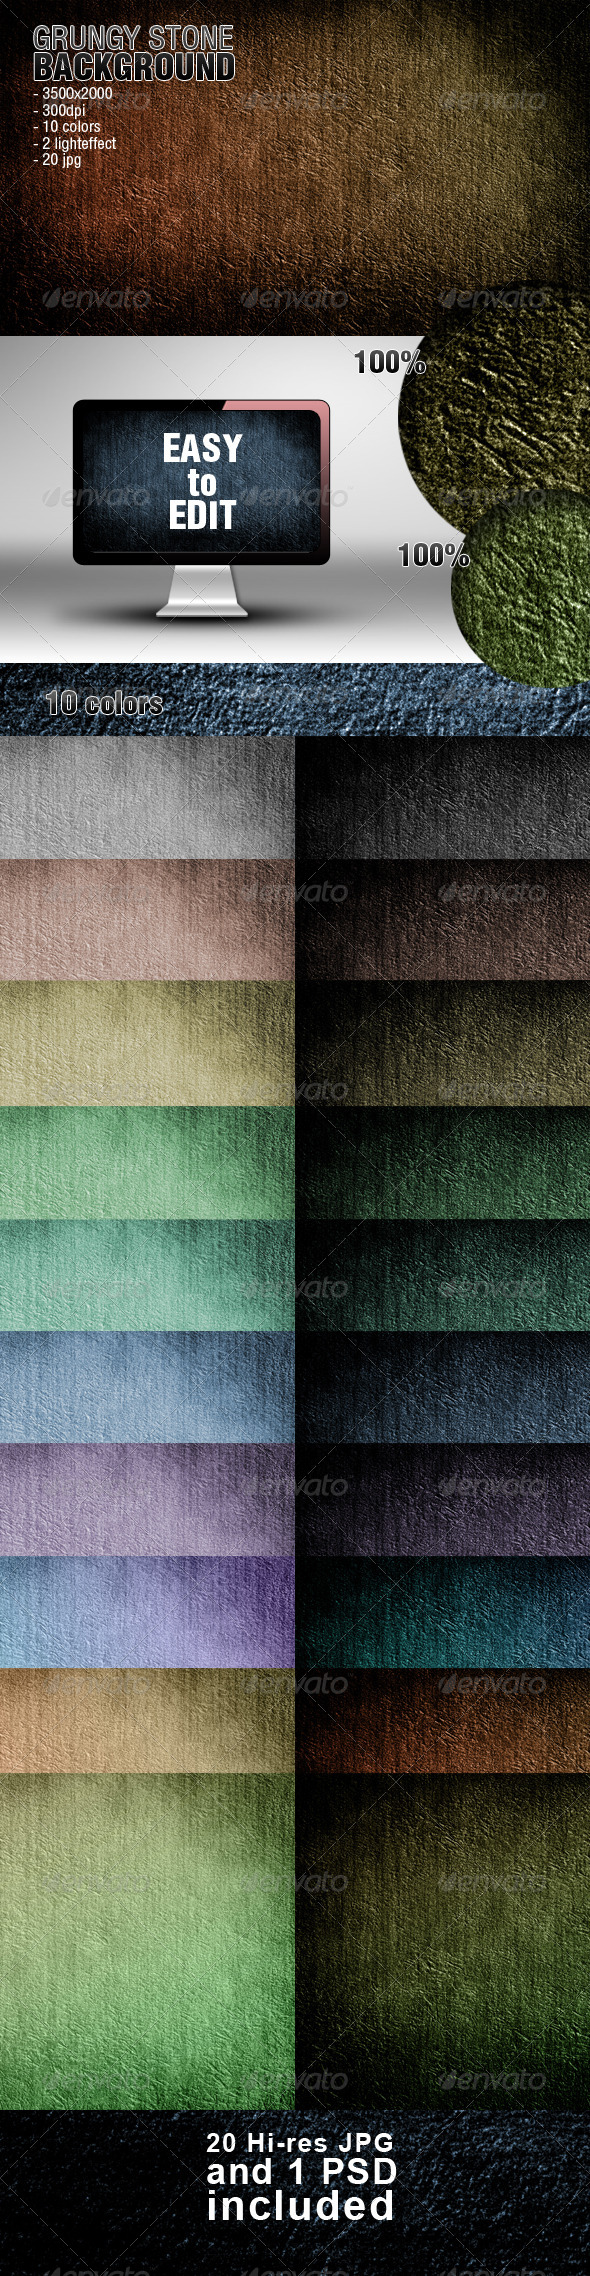 Grungy Stone Background - Abstract Backgrounds